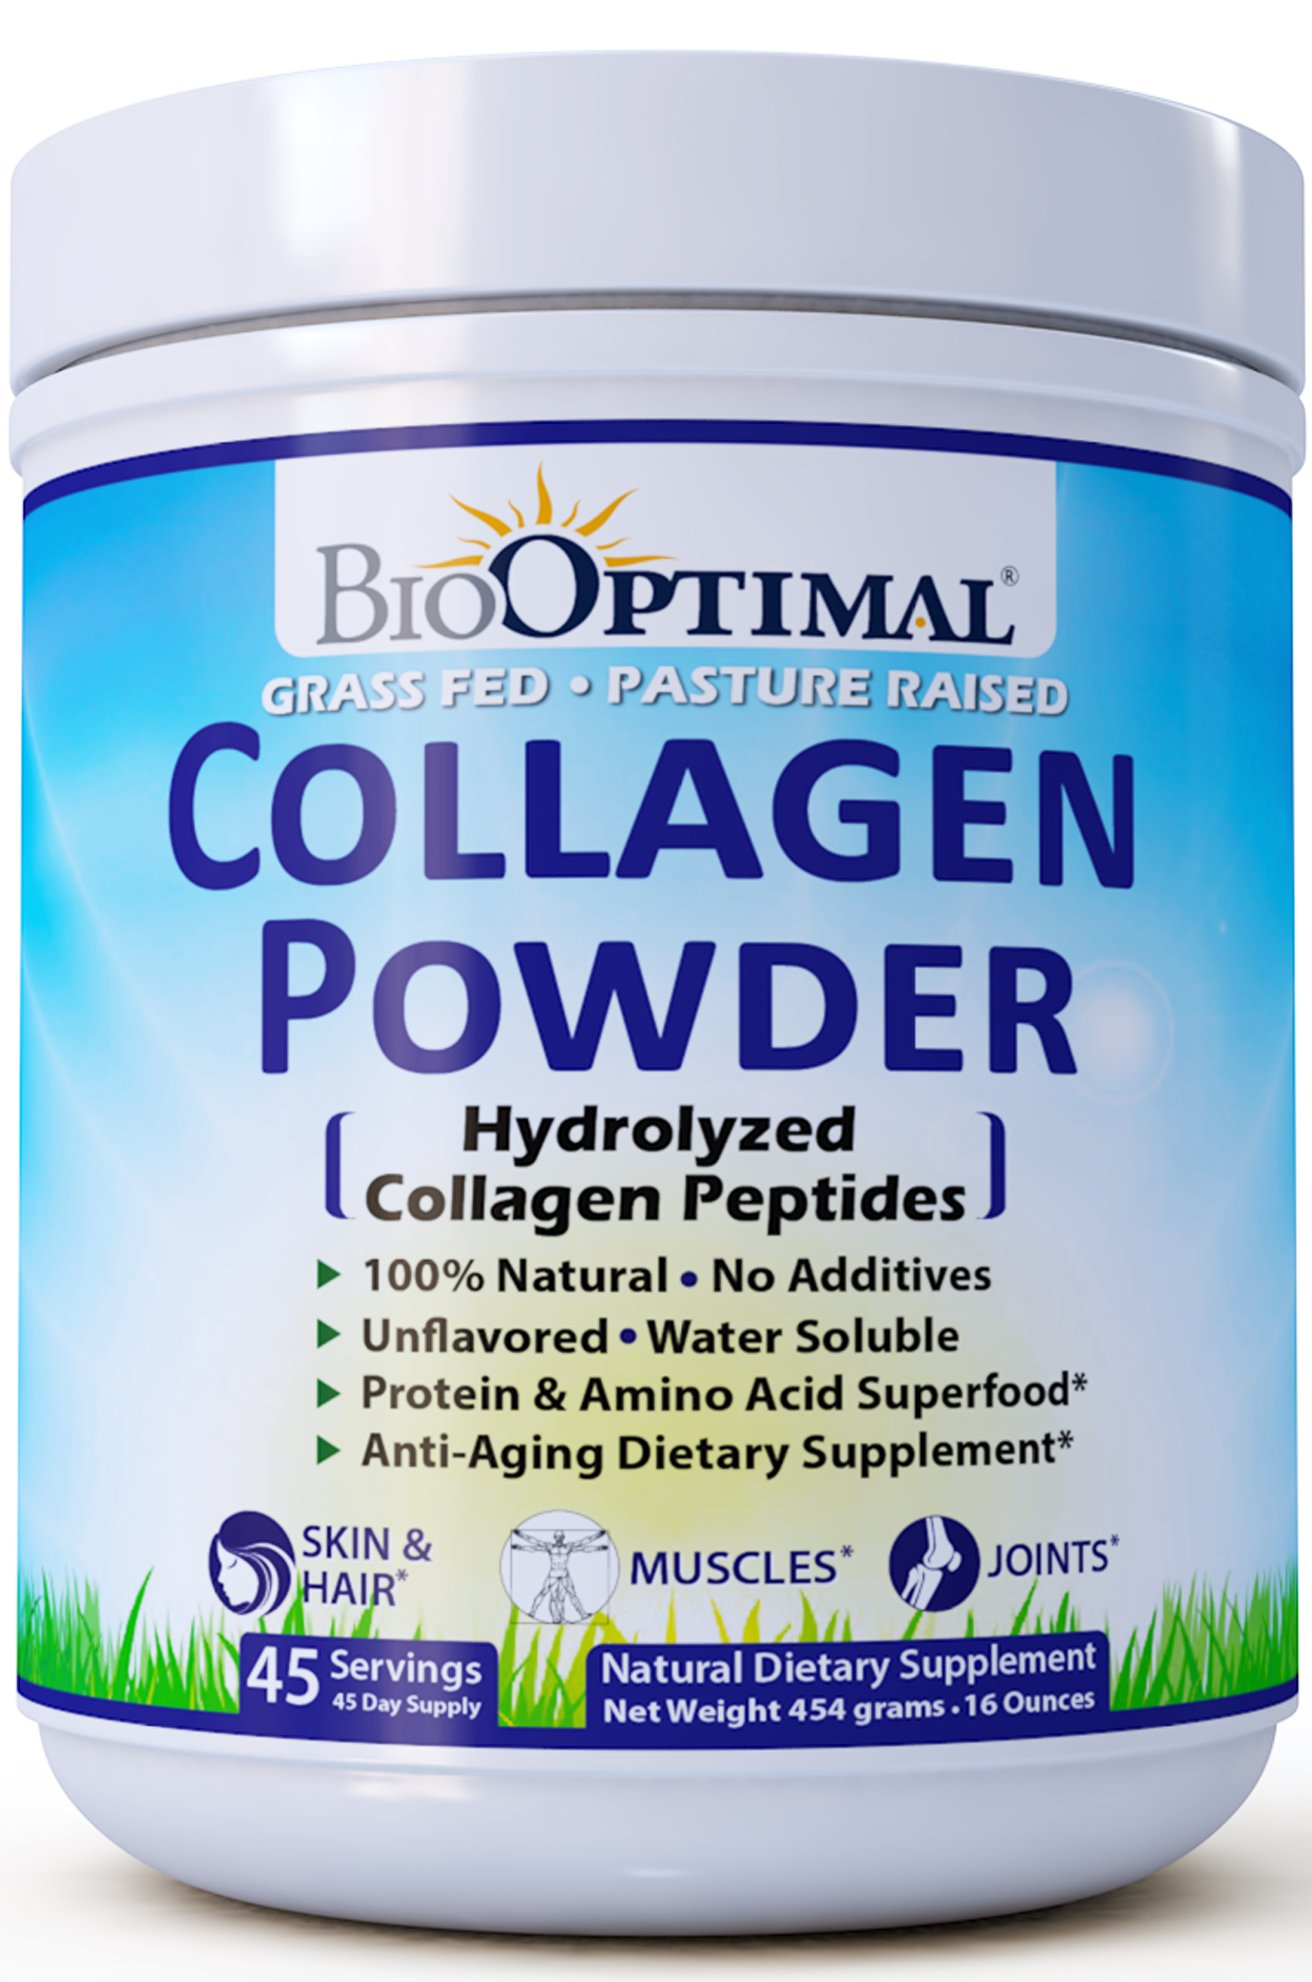 BioOptimal Collagen Peptides, Collagen Powder Grass Fed, Non-GMO Premium Quality Hydrolyzed Collagen Protein, Pasture Raised, Dissolves Easily, 16 Ounces by BioOptimal